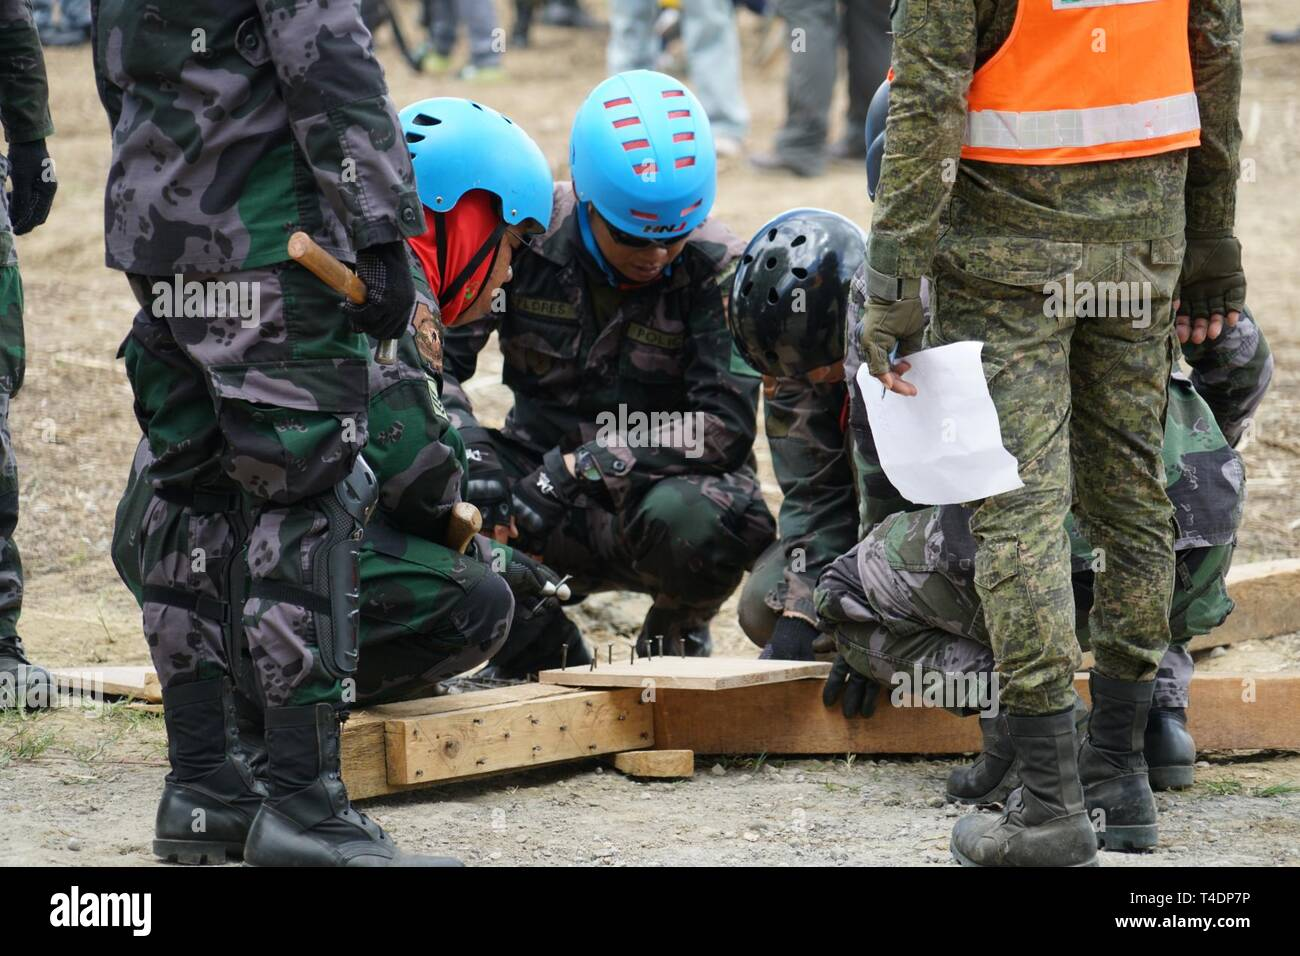 Rescue workers from the Tacloban Police Department construct a collapsed structure shoring system during the Pacific Partnership 2019 Humanitarian Assistance and Disaster Relief (HADR) exercise in Tacloban, Philippines, March 21, 2019. Pacific Partnership's mission is to work collectively with host and partner nations to enhance regional interoperability and disaster response capabilities, increase stability and security in the region, and foster new and enduring friendships across the Indo-Pacific region.  Pacific Partnership, now in its 14th iteration, is the largest annual multinational hum - Stock Image